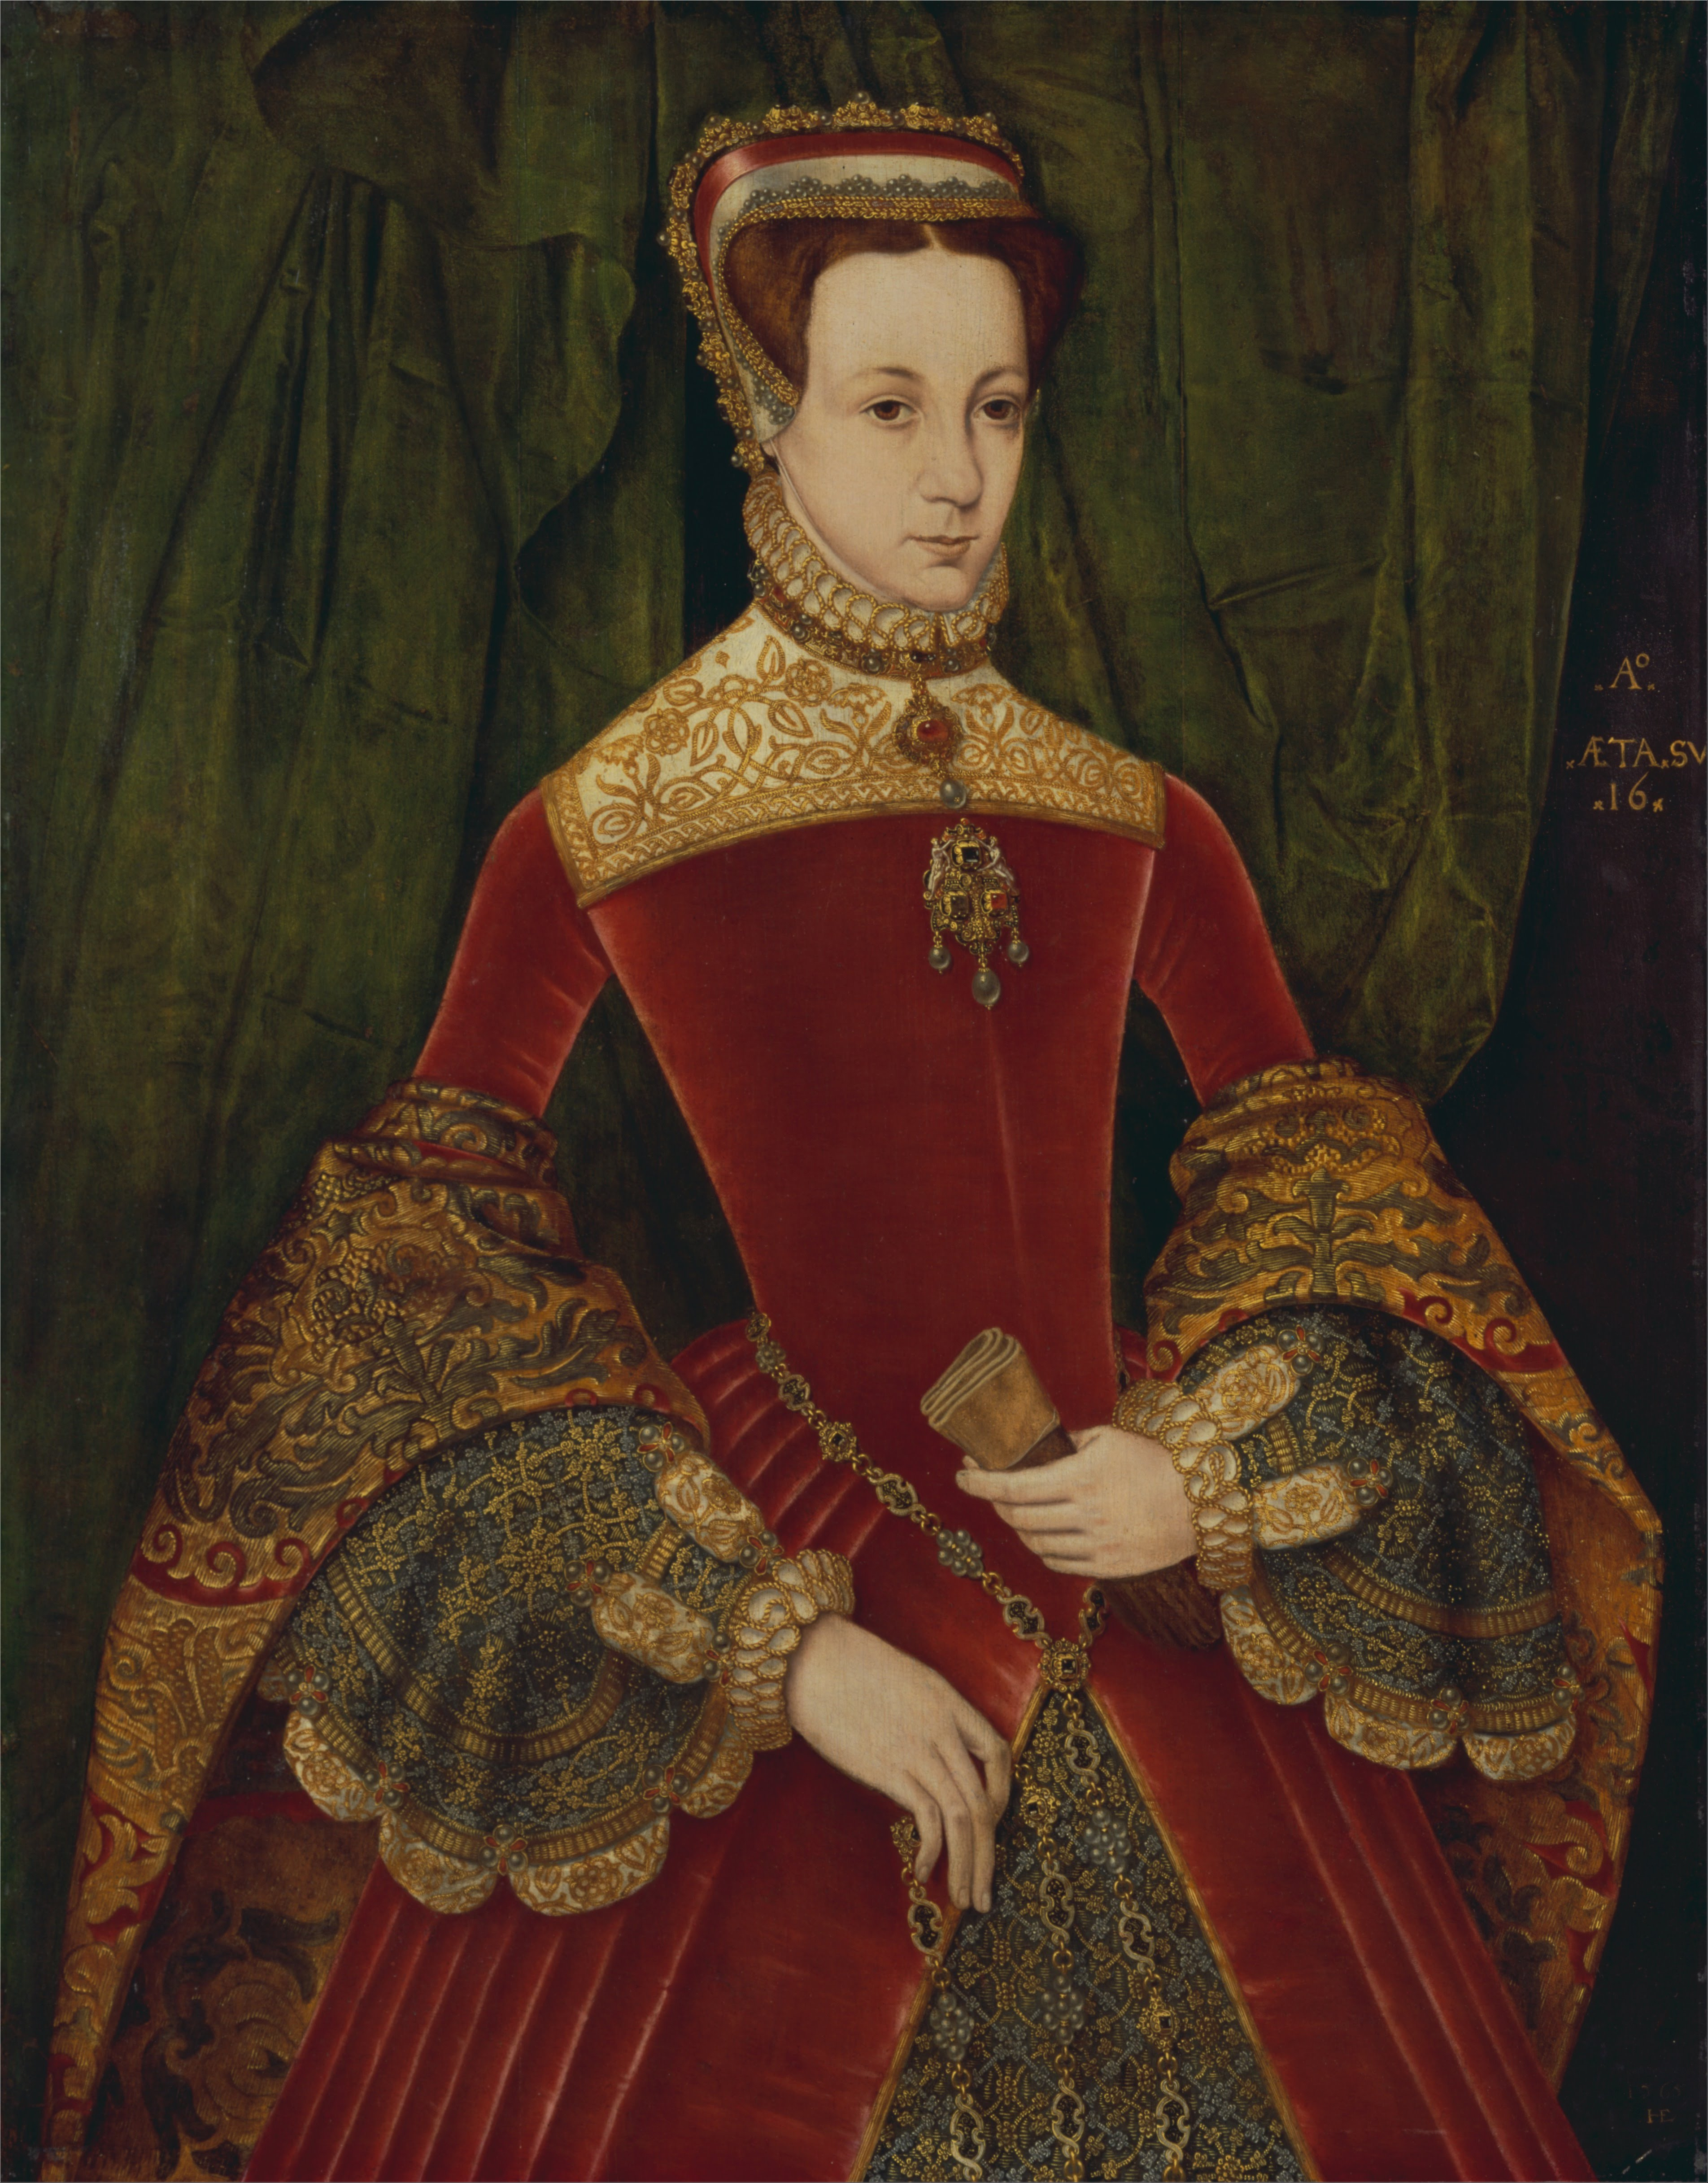 https://upload.wikimedia.org/wikipedia/commons/a/a1/Hans_Eworth_-_Portrait_of_a_woman%2C_aged_sixteen%2C_previously_identified_as_Mary_Fitzalan%2C_Duchess_of_Norfolk%2C_1565_-_Google_Art_Project.jpg